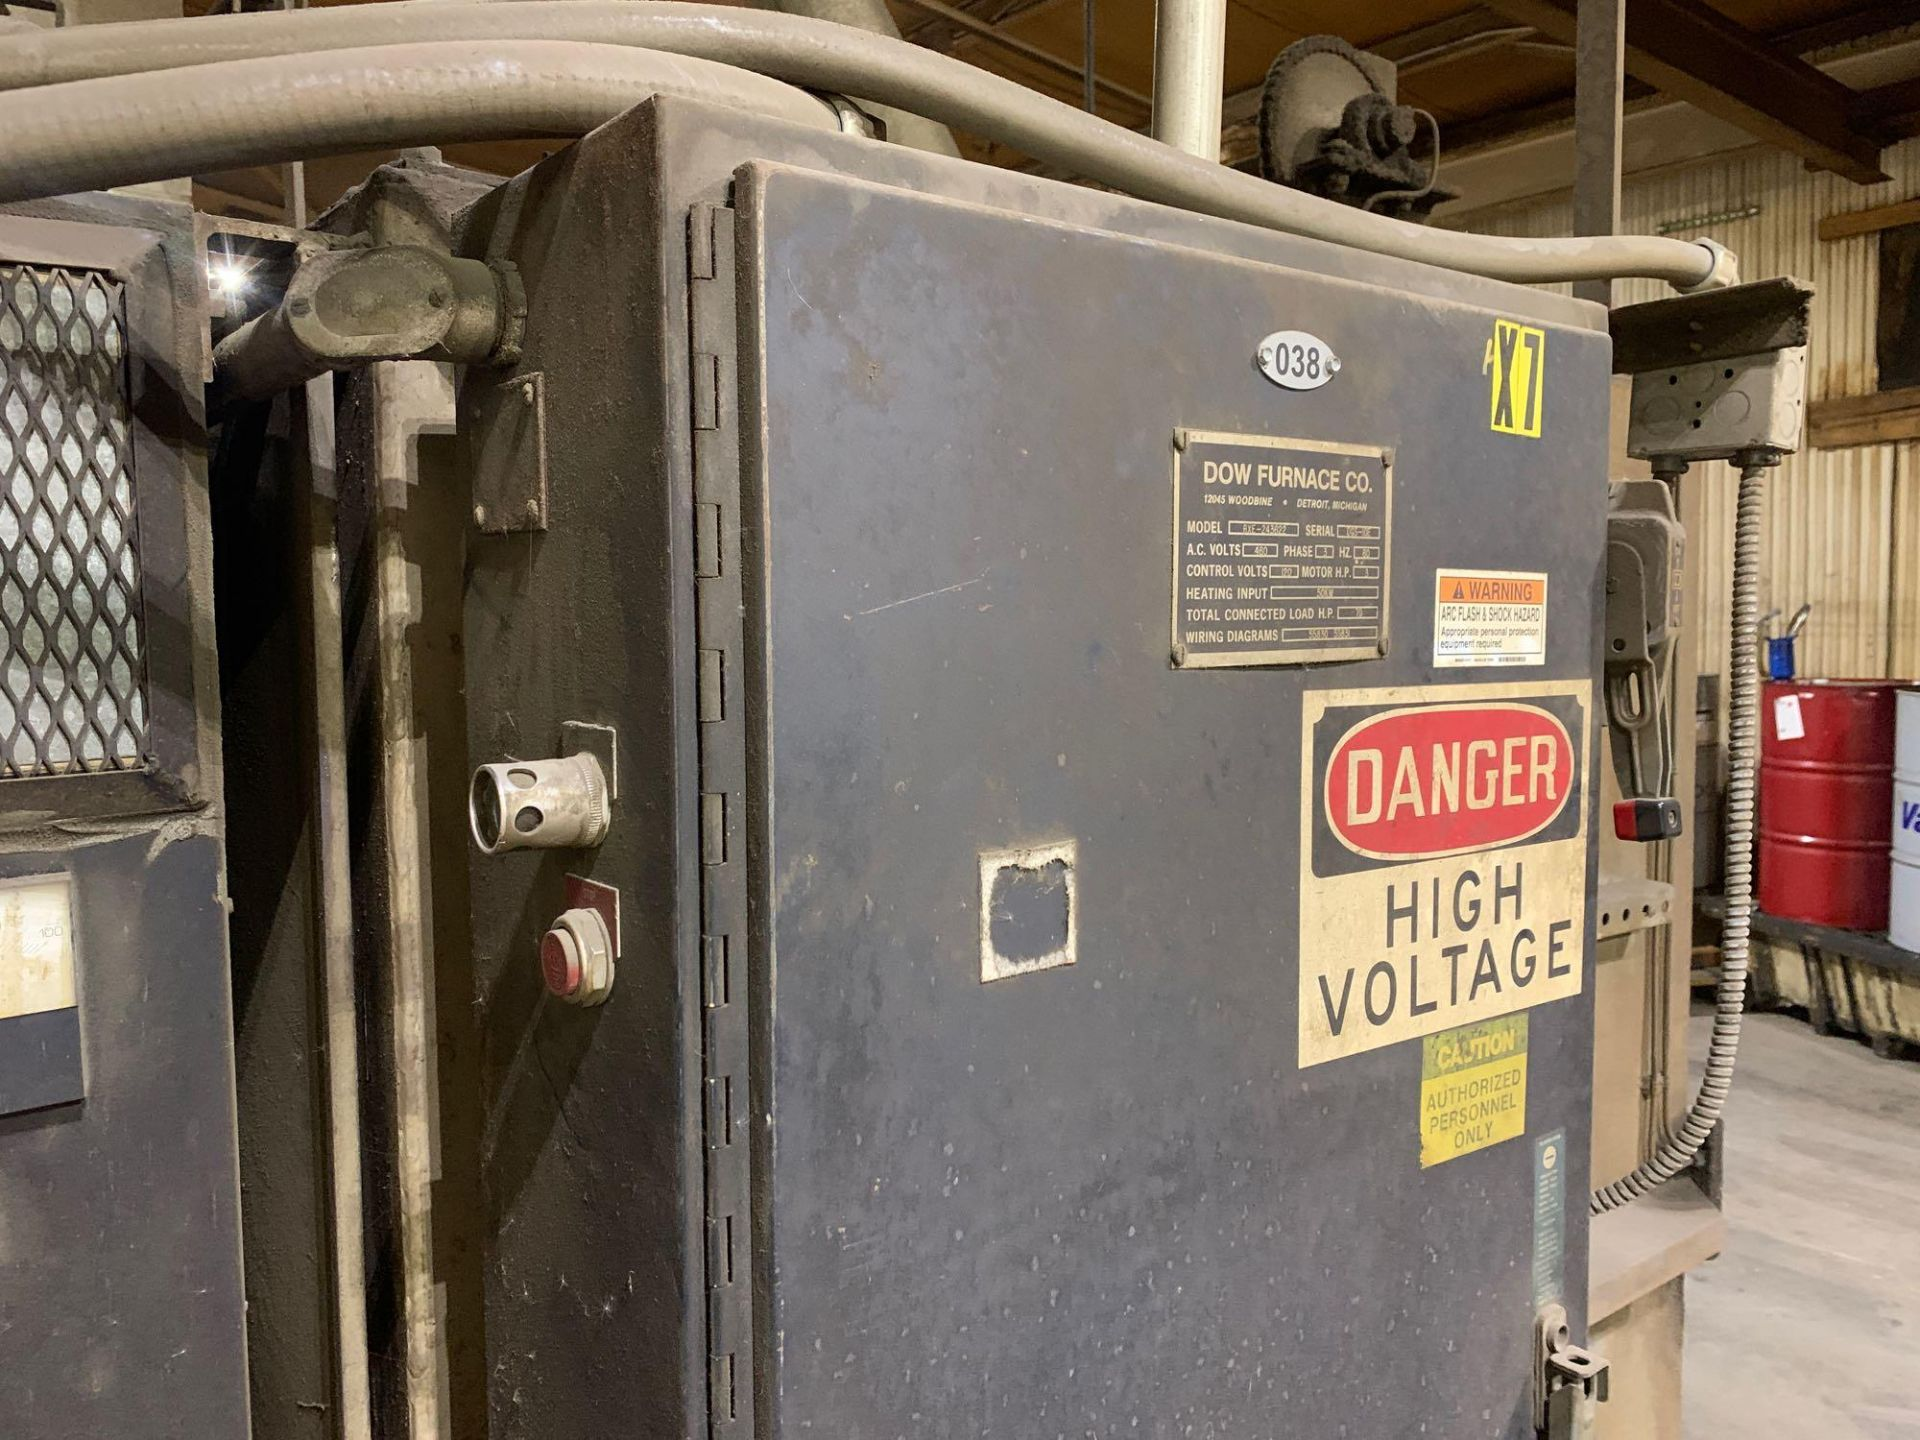 Dow Furnace Co. Electric Draw Furnace Seller States It Will Do At Least 1200 Degrees Model Bxe-24362 - Image 10 of 21